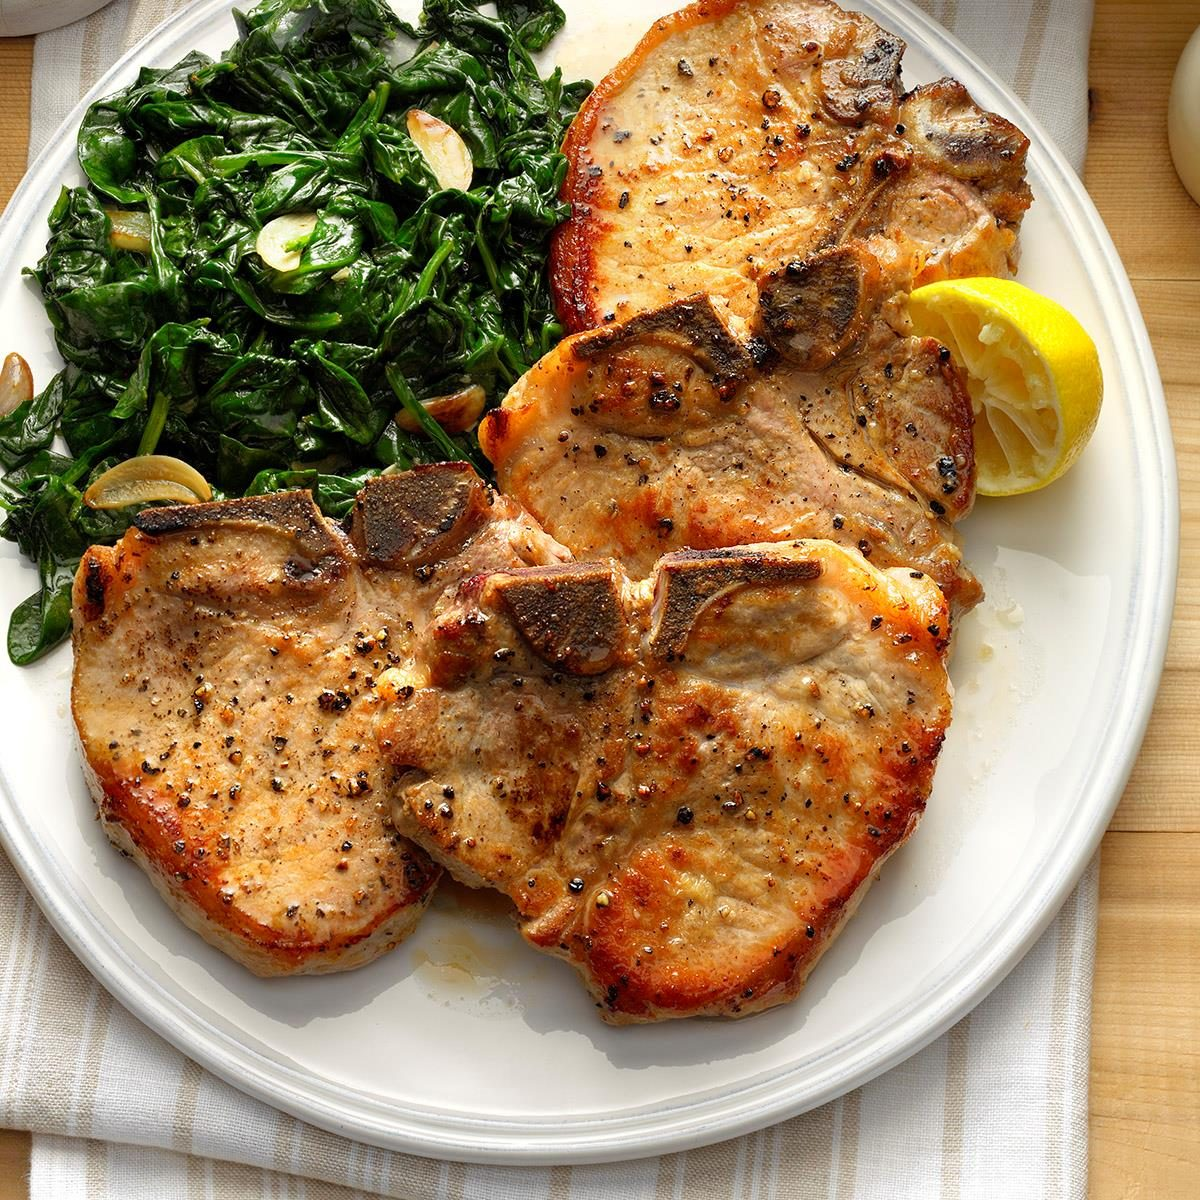 Day 17: Sauteed Pork Chops with Garlic Spinach